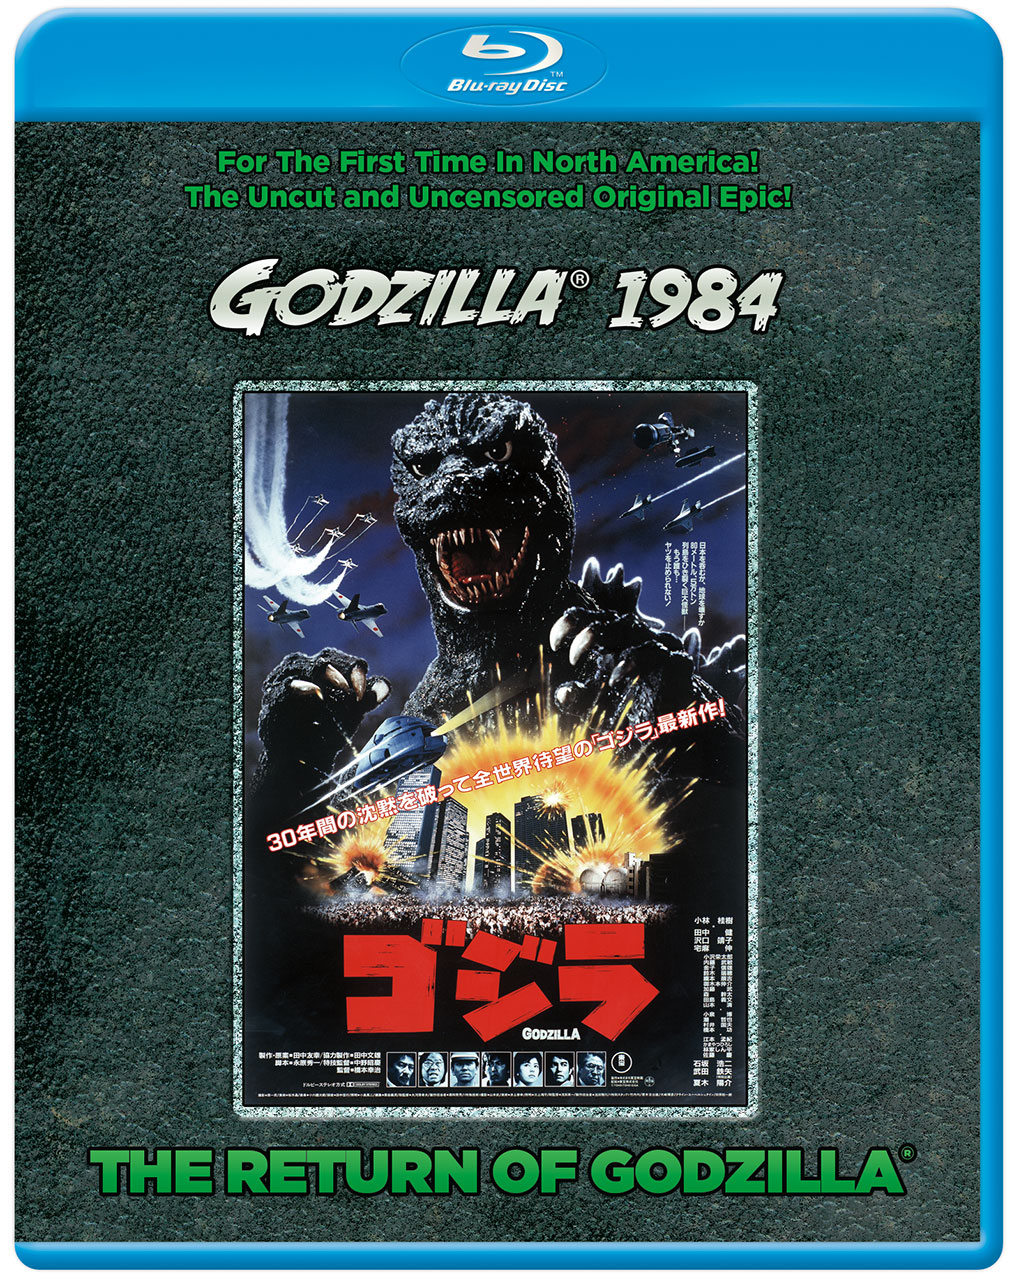 The Return of Godzilla (1984) Blu-ray 814131015594